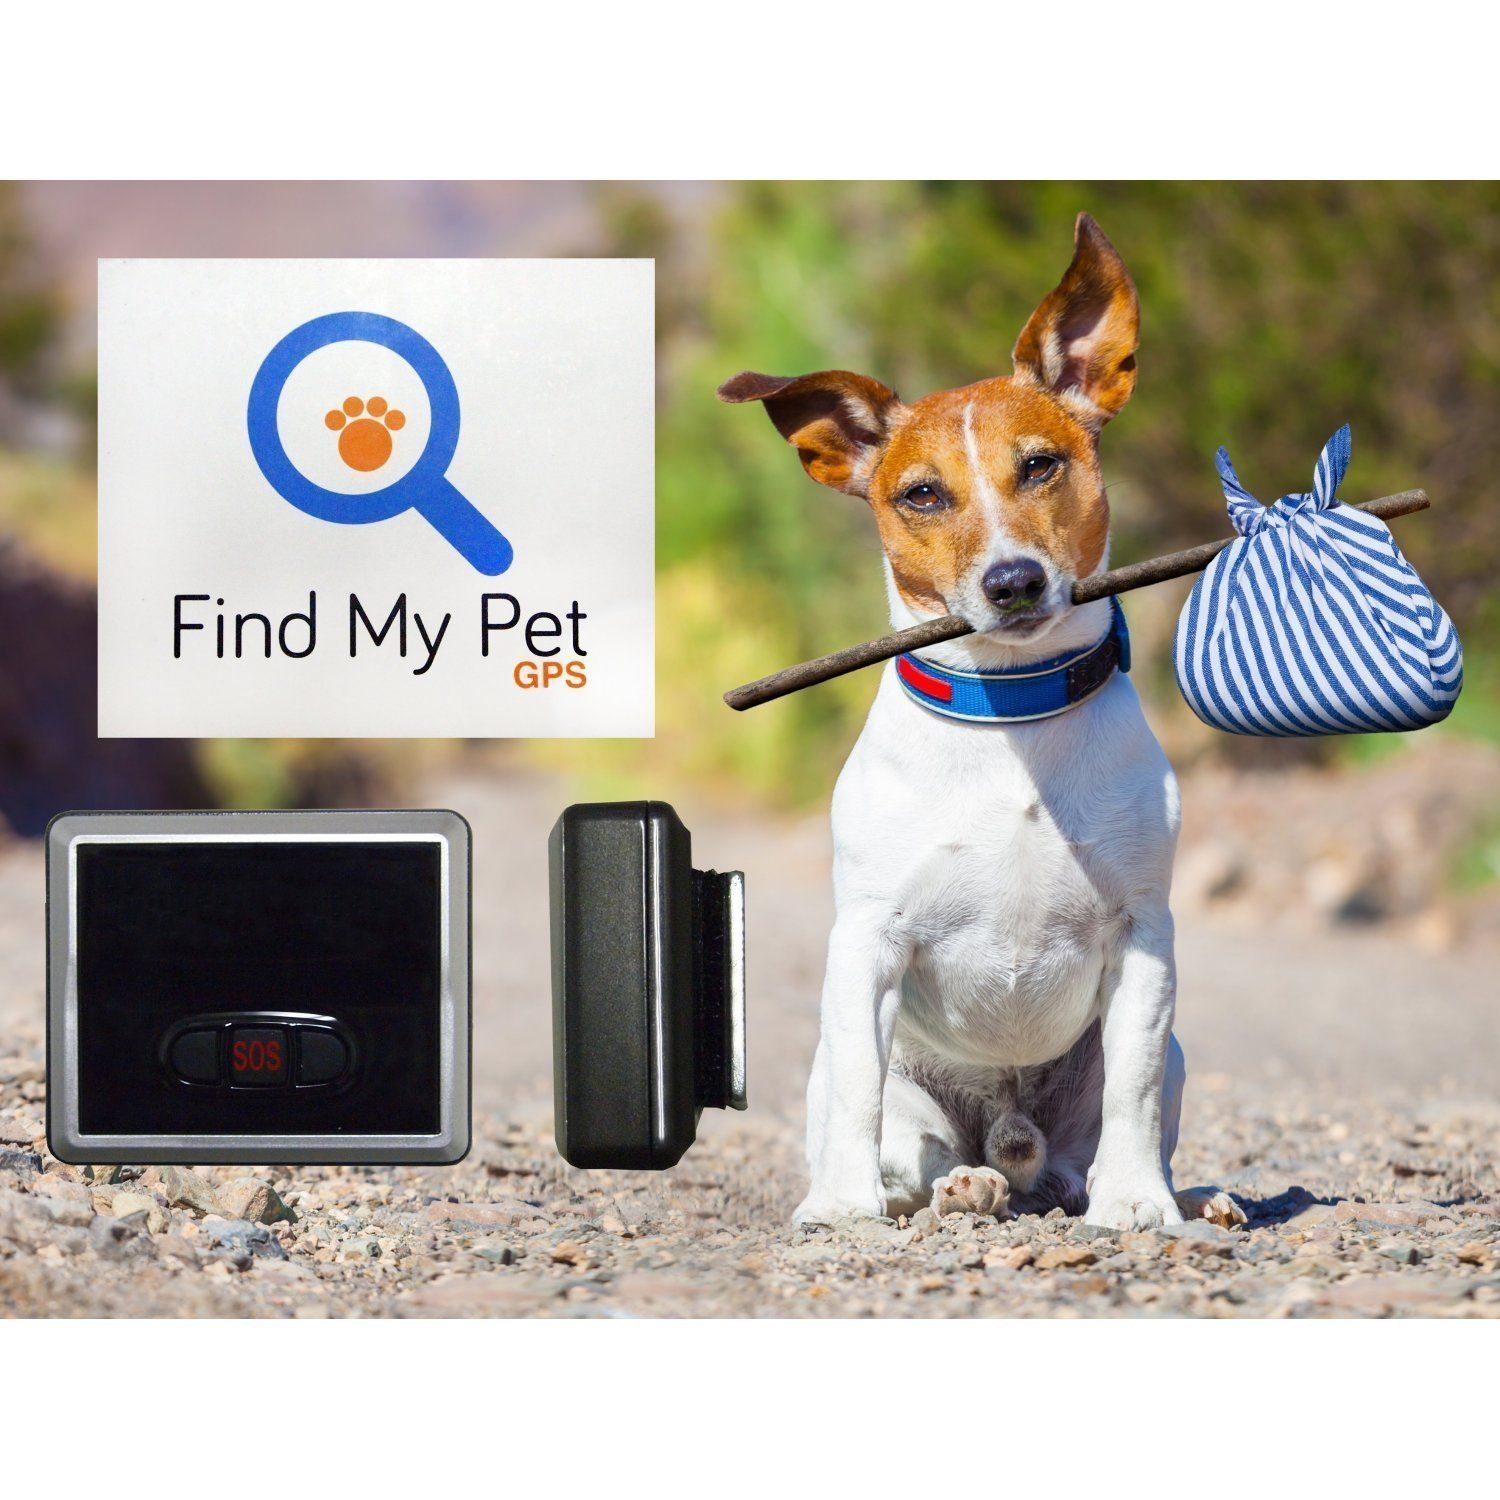 10 BEST GPS TRACKERS FOR PETS